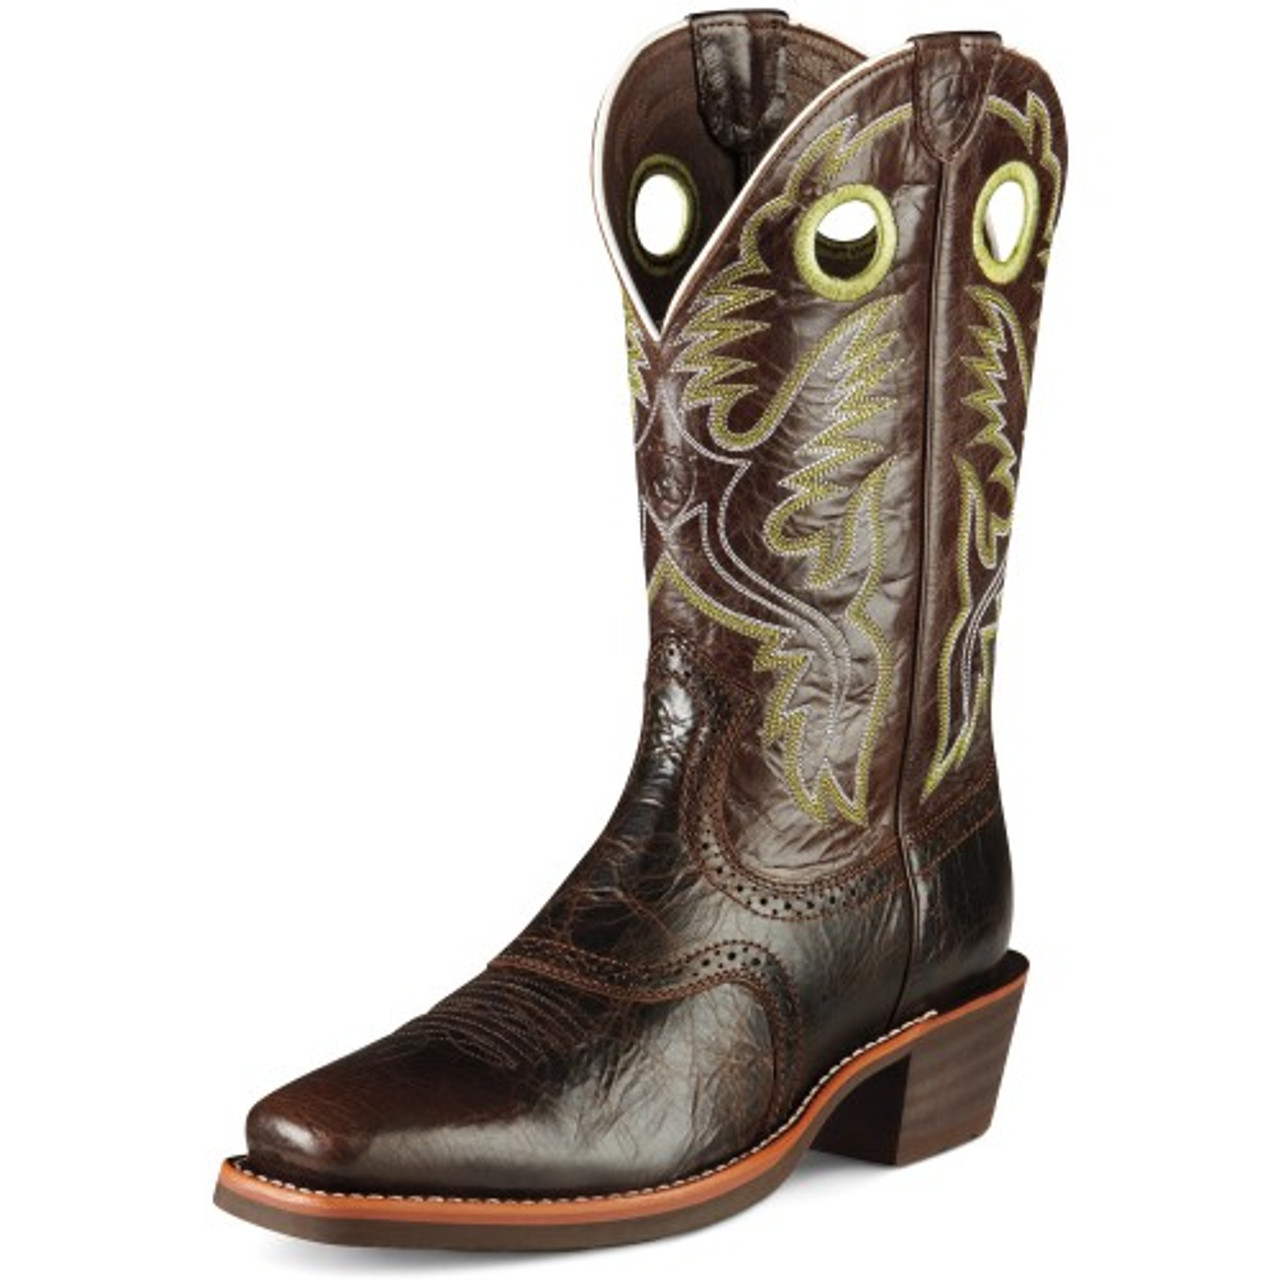 50a74aba3a2 Ariat Men's Boots - Heritage Roughstock - Thunder Brown